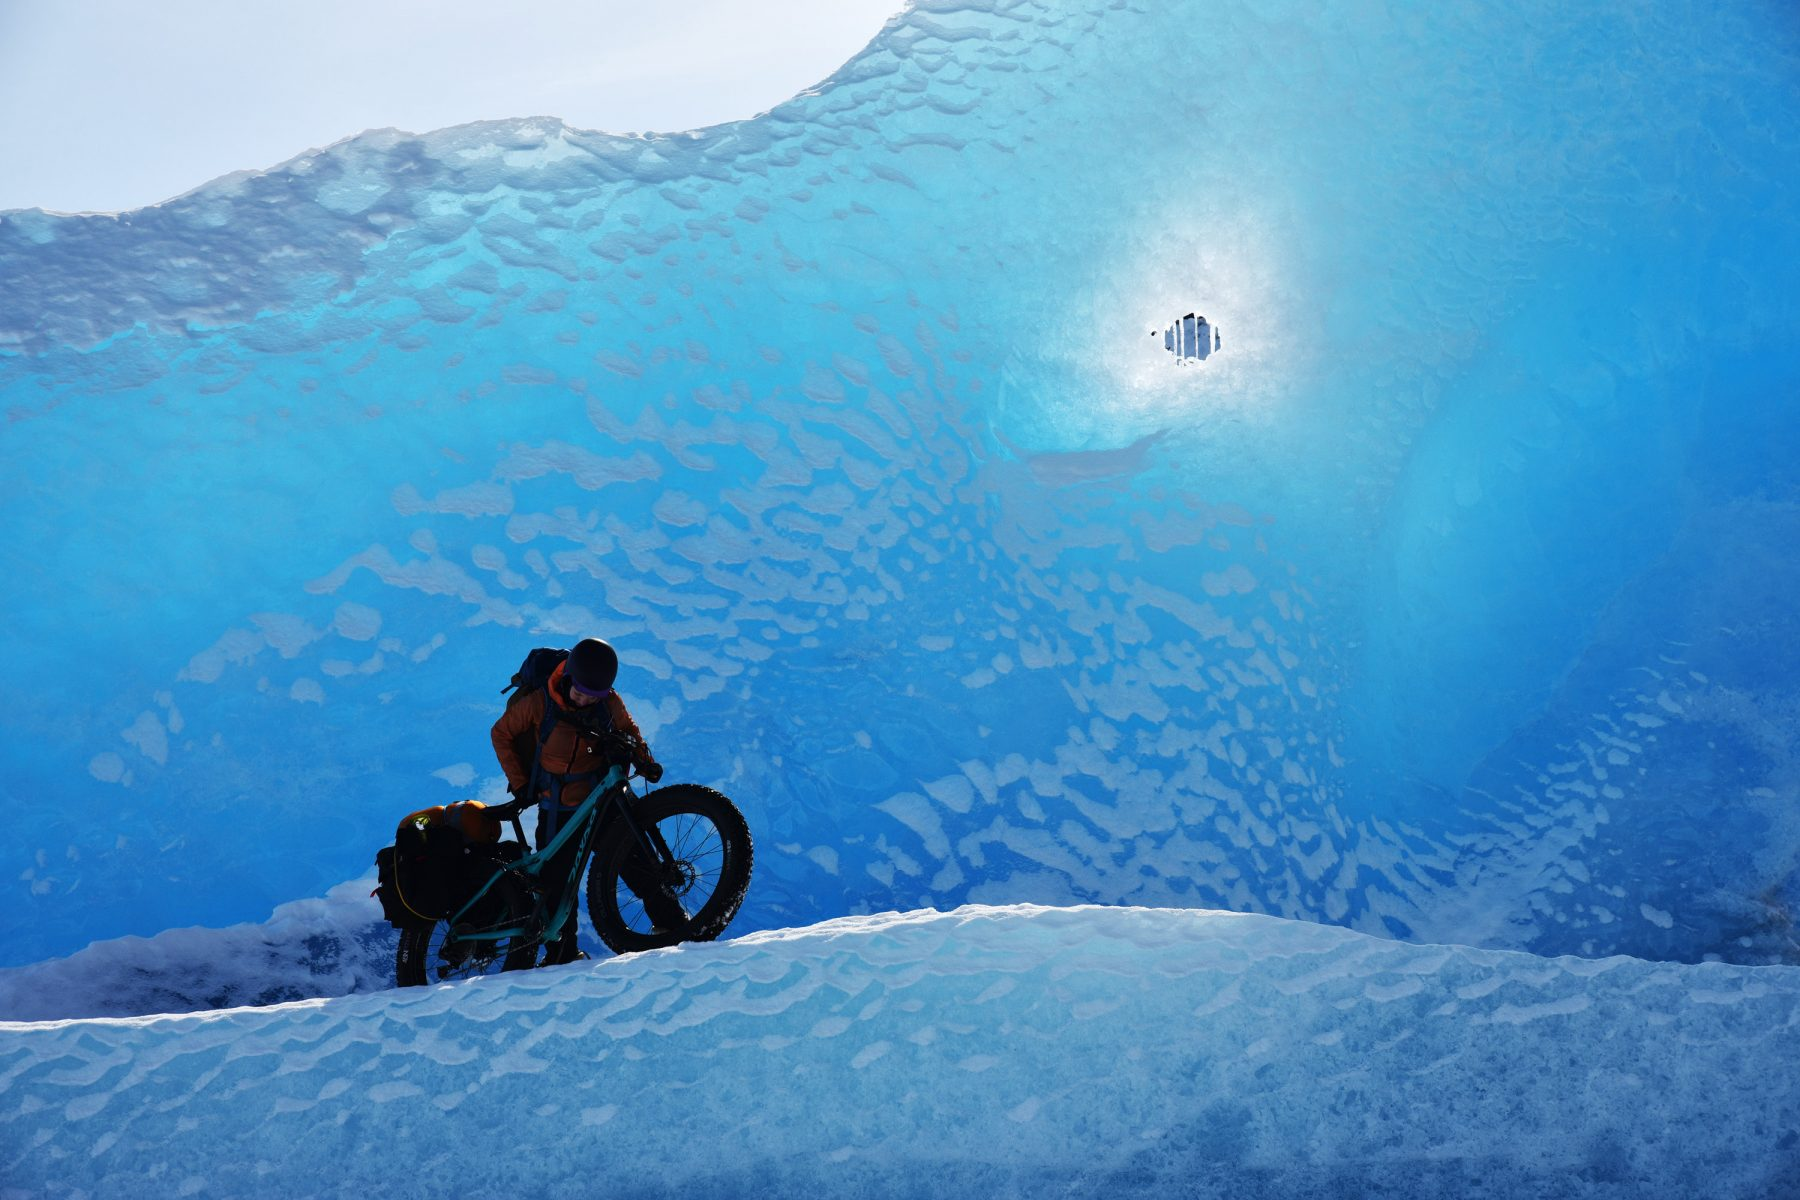 Devin Kelly pushing her bike up an iceberg at Knik Glacier